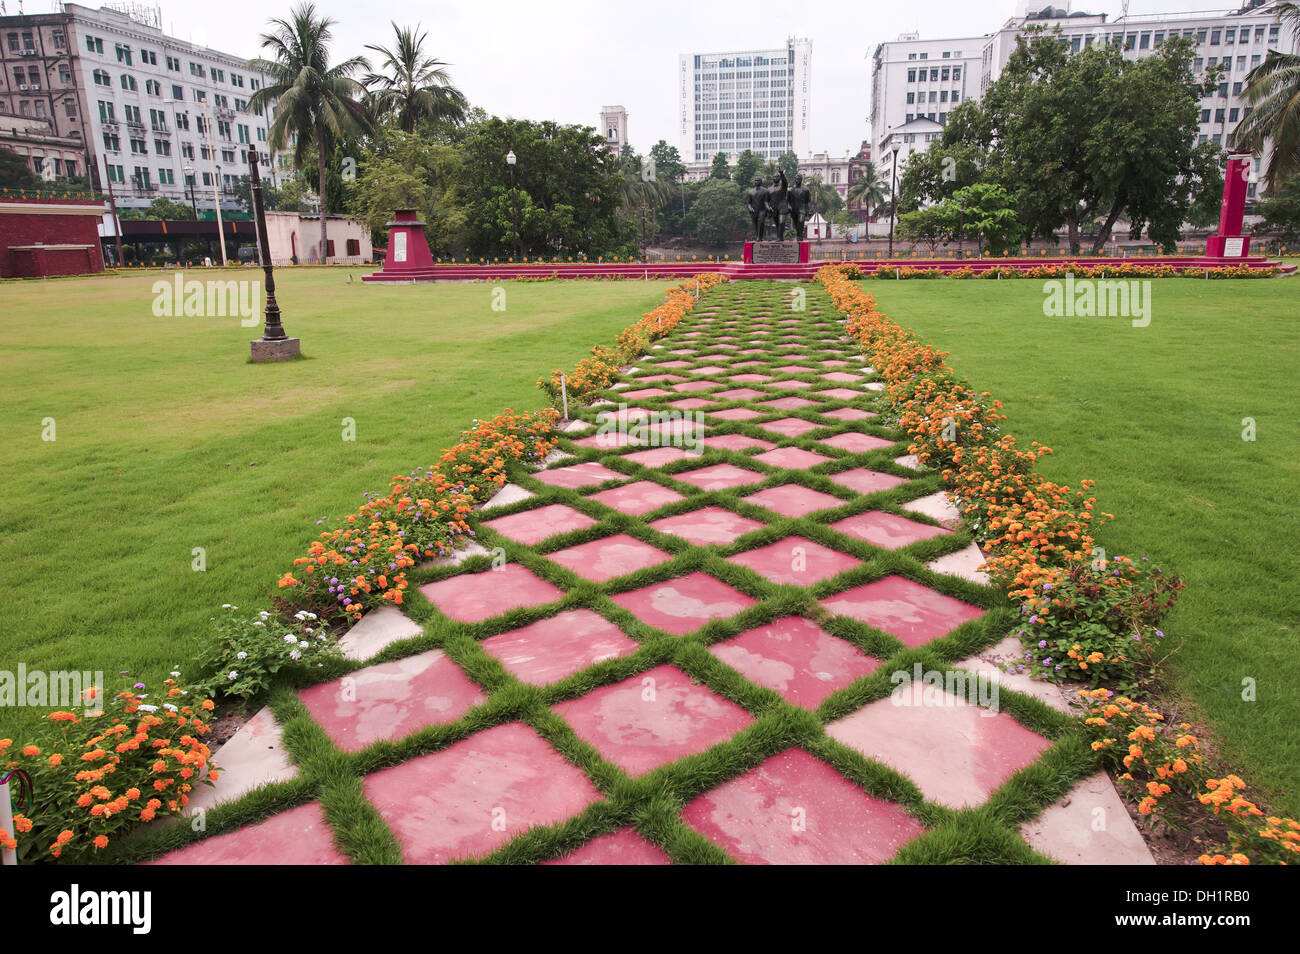 Diamond Shape Stock Photos & Diamond Shape Stock Images - Alamy on diamond interior design, diamond landscape quilt, diamond art design, diamond flower design,